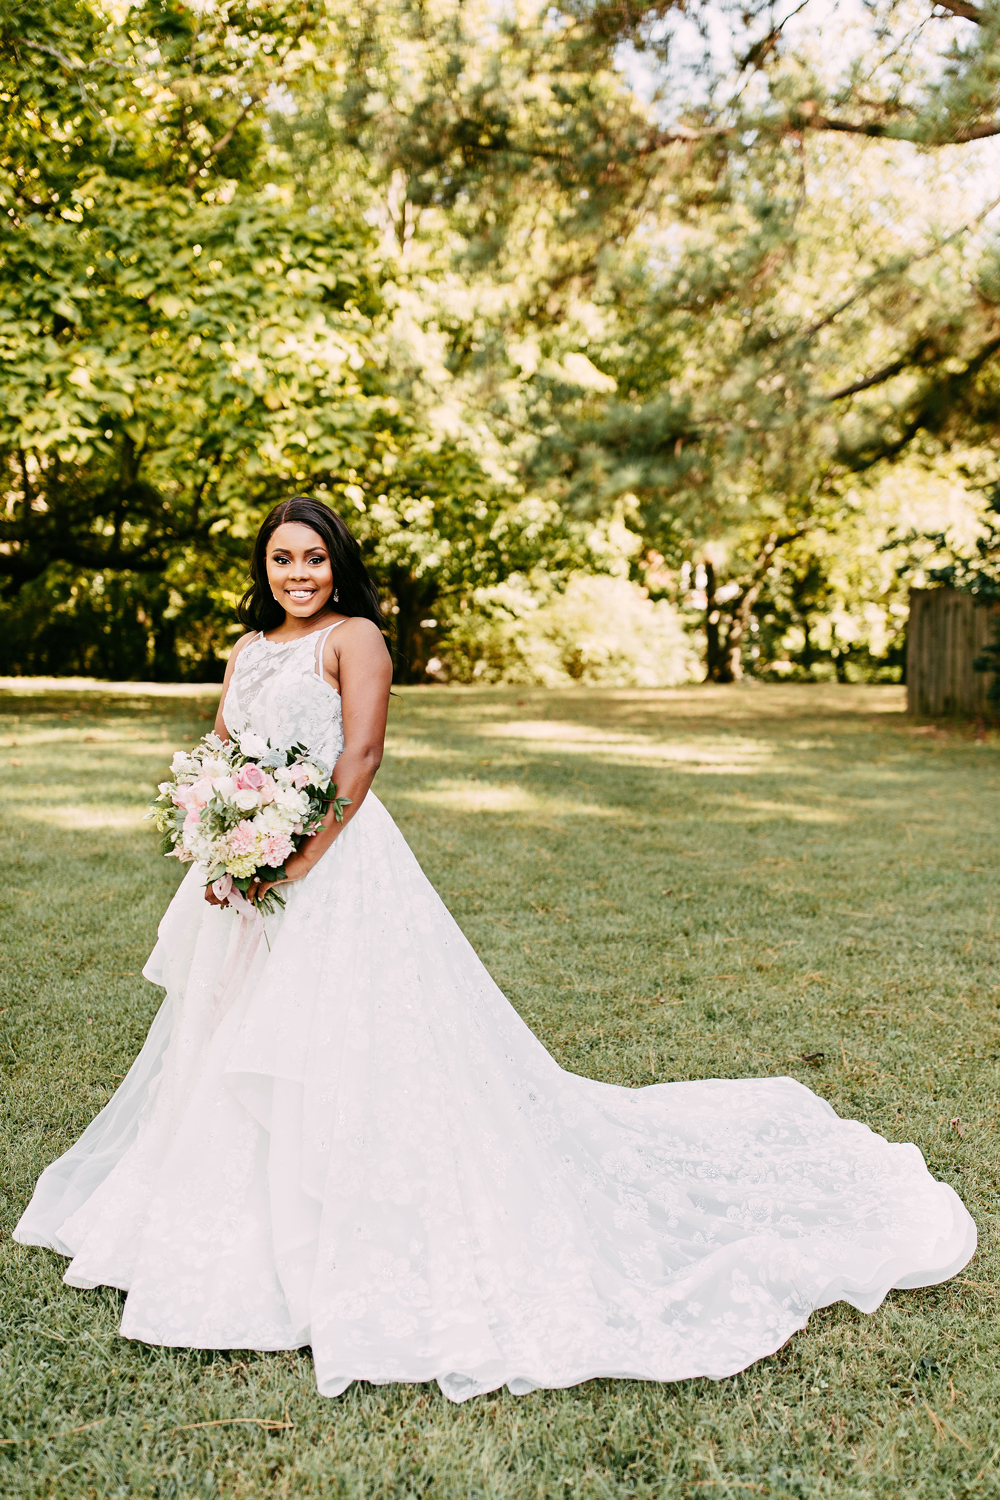 bride posing on lawn wearing princess-style gown